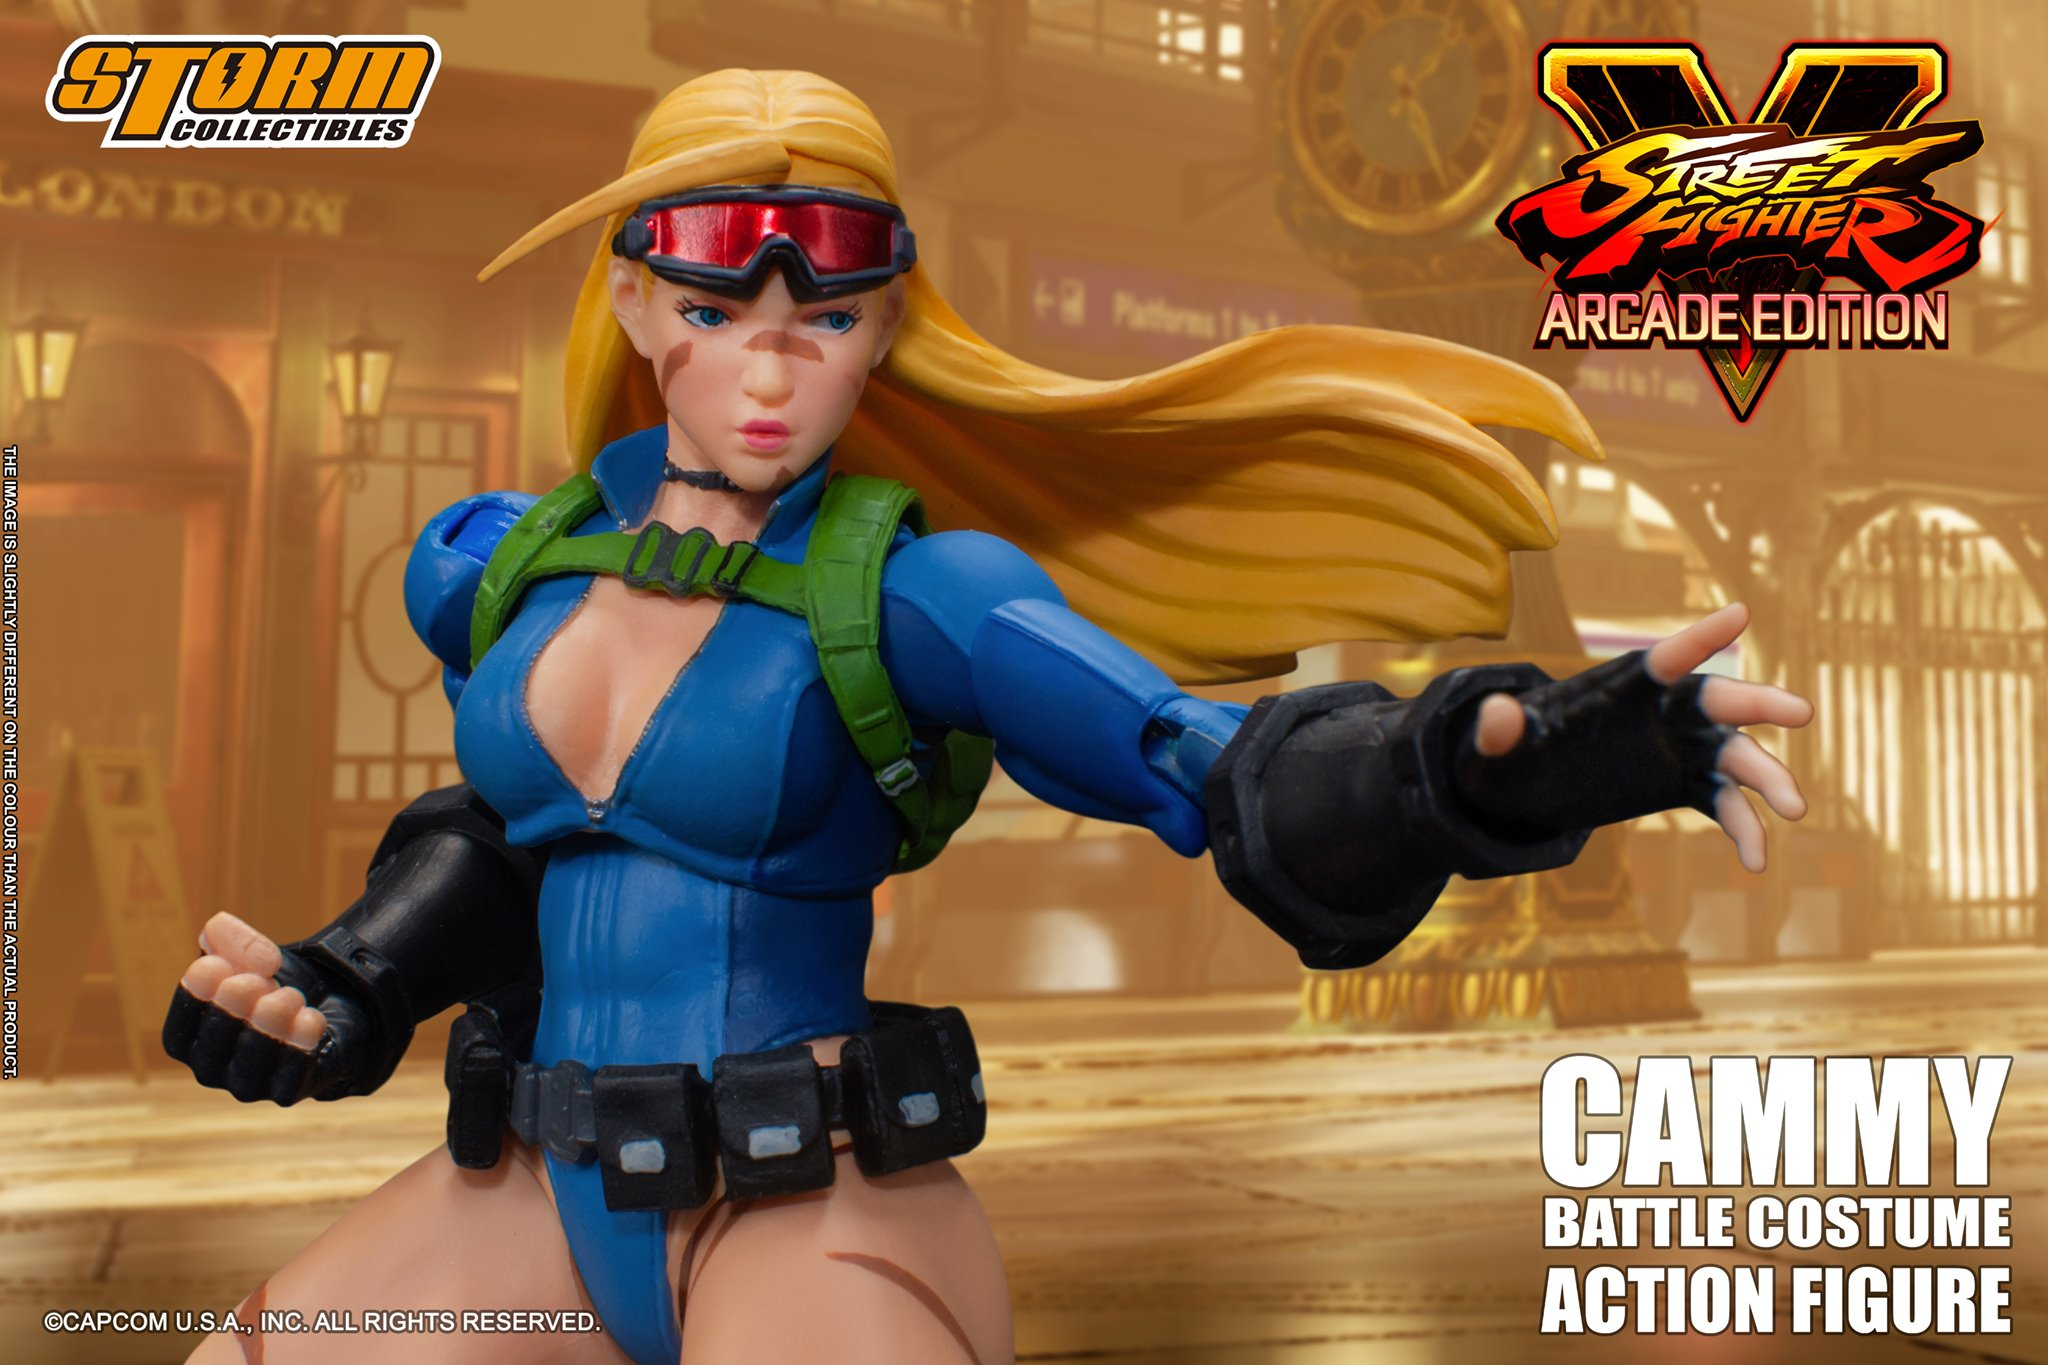 Storm Battle Costume Cammy